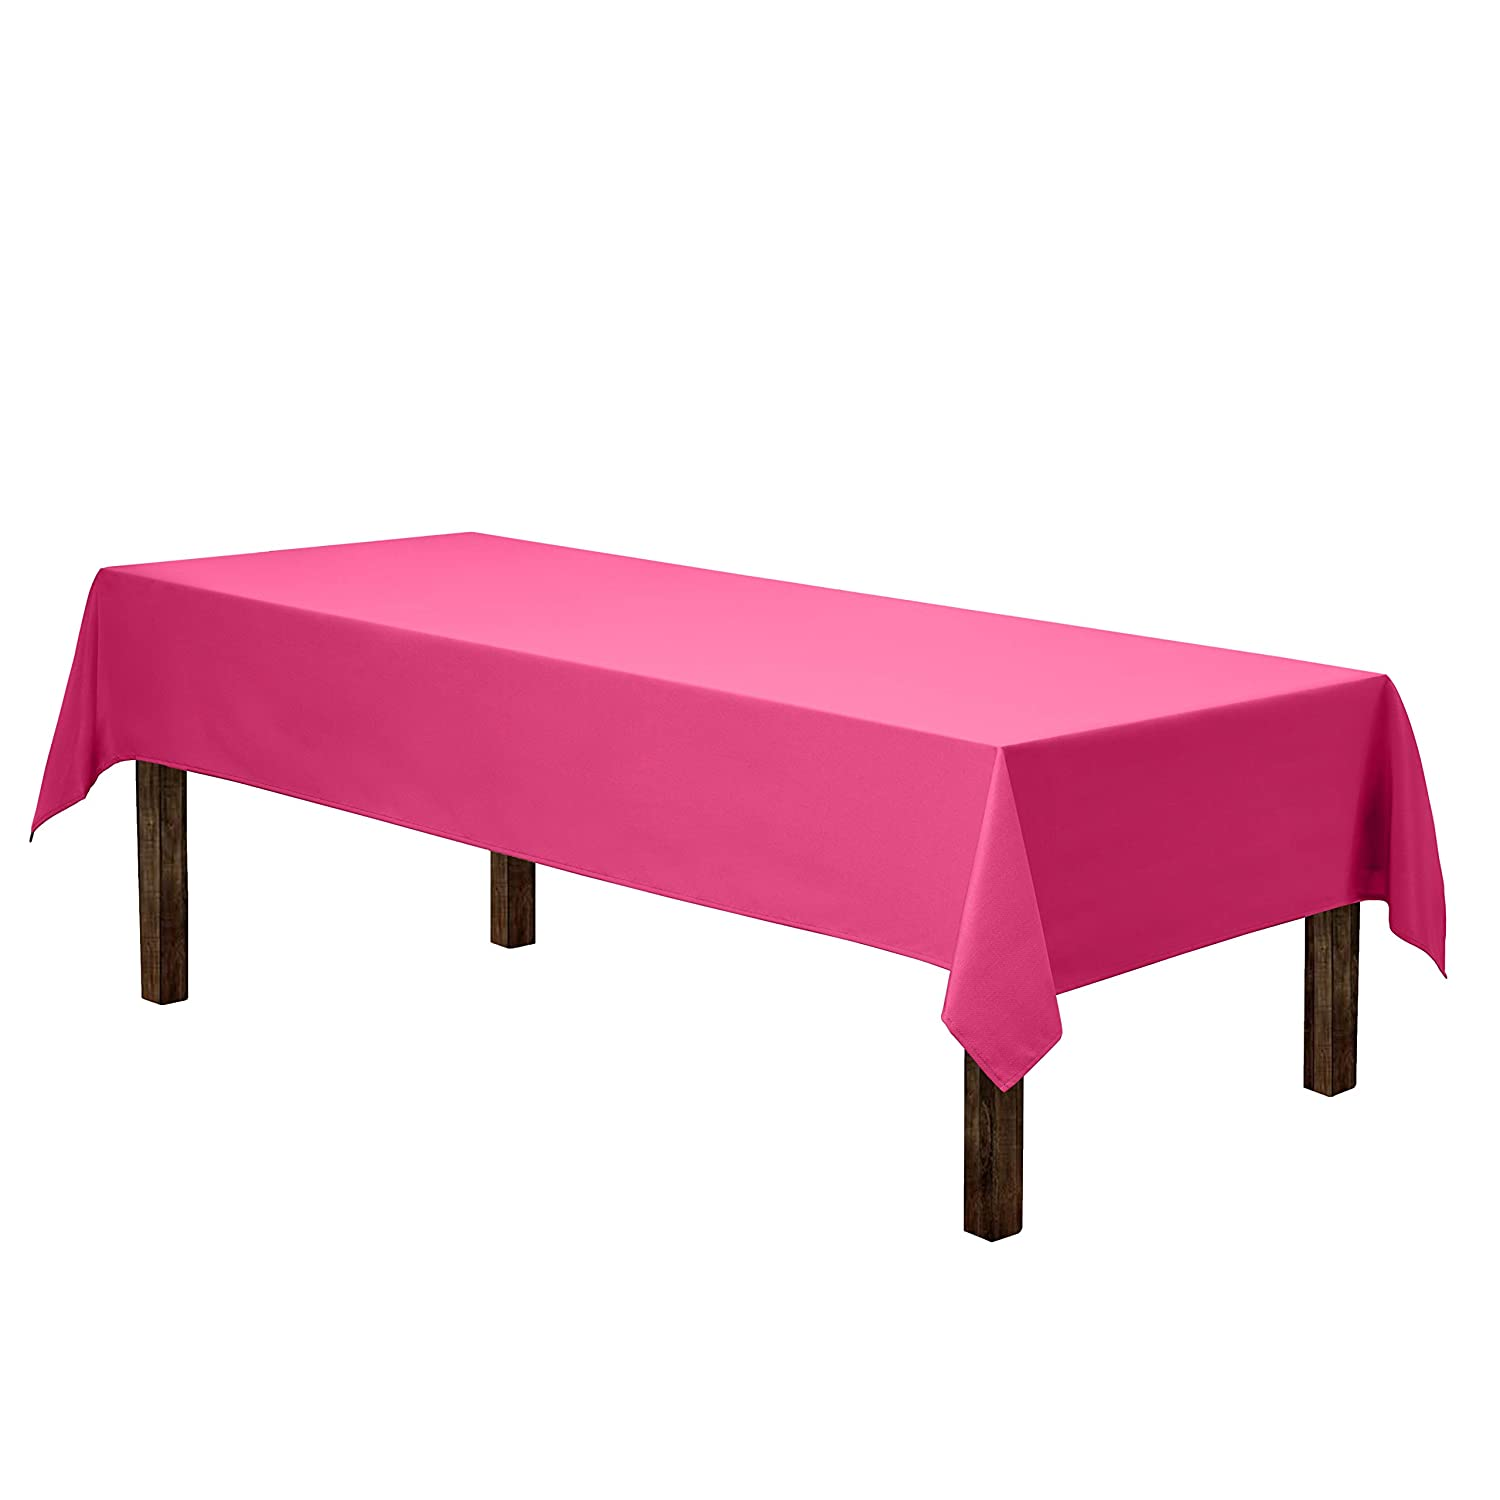 "Gee Di Moda Rectangle Tablecloth - 60 x 102"" Inch - Fuchsia Rectangular Table Cloth for 6 Foot Table in Washable Polyester - Great for Buffet Table, Parties, Holiday Dinner, Wedding & More"